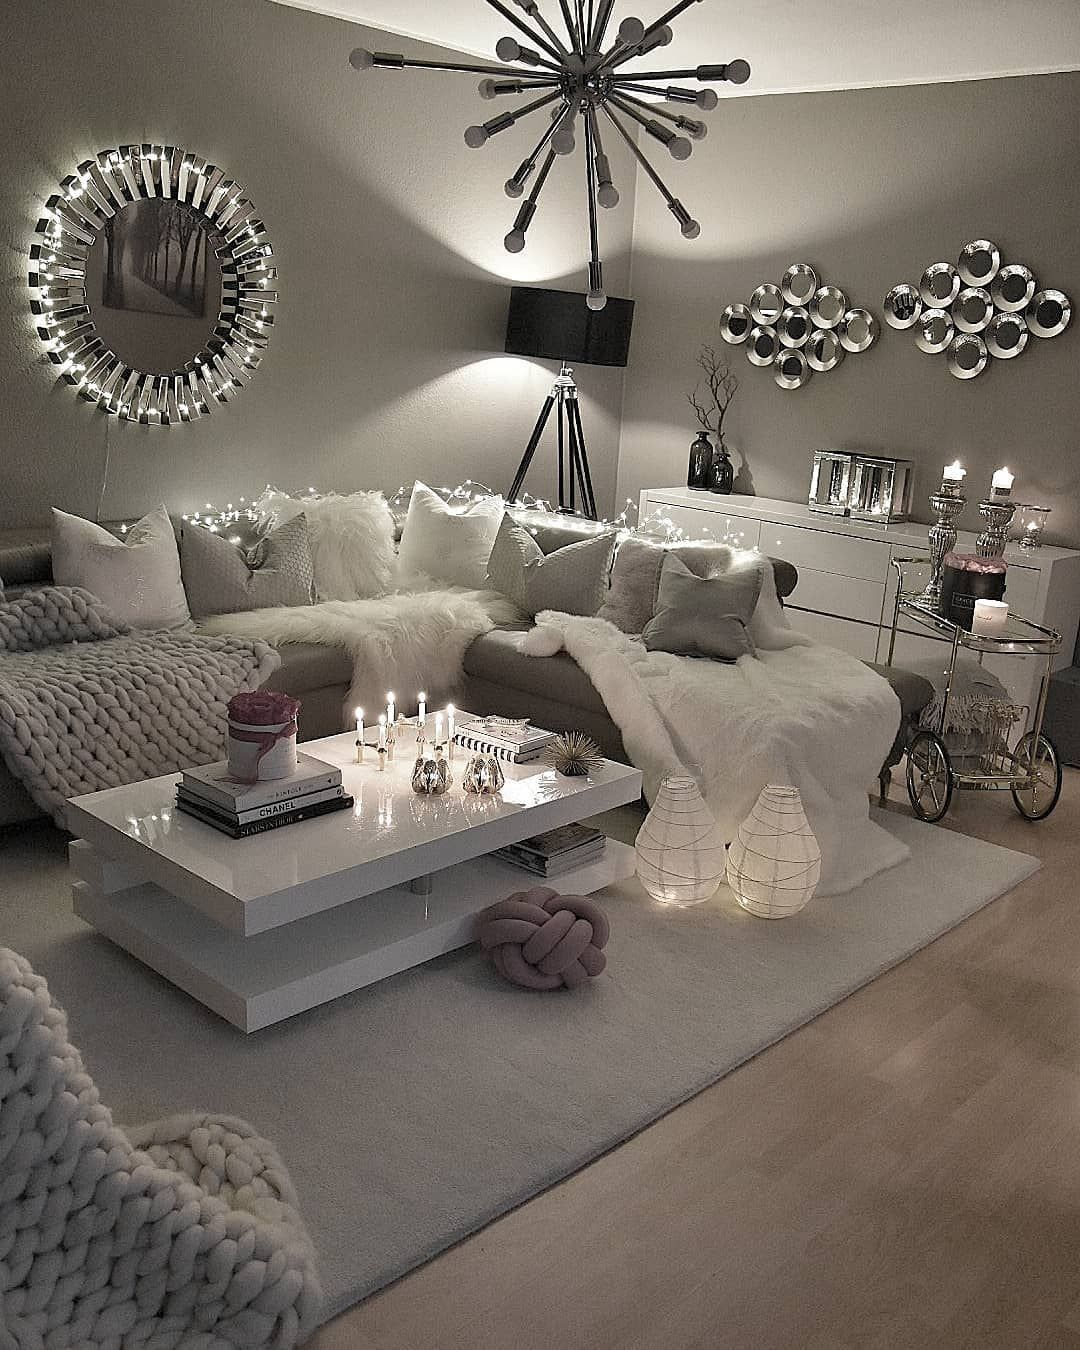 reading room decor inspiration to make you cozy interior design also pin by angela on home living rh pinterest